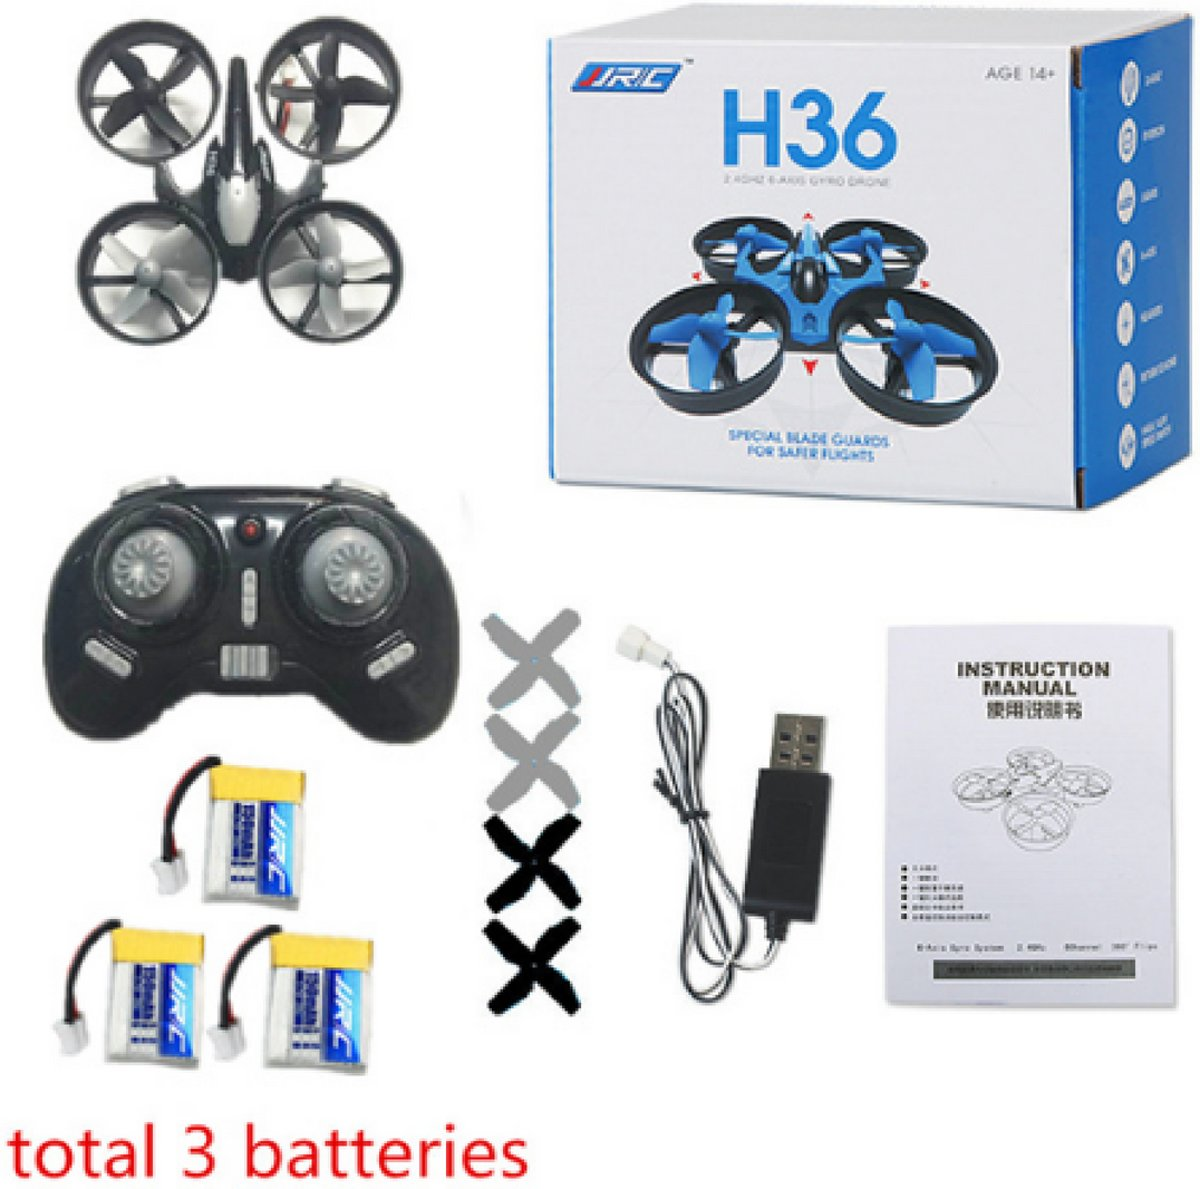 Mini Drone Jjrc H36 - Drone - Quadcopters - Return Key - RC - Helicopter - Kinderspeelgoed - Zwart